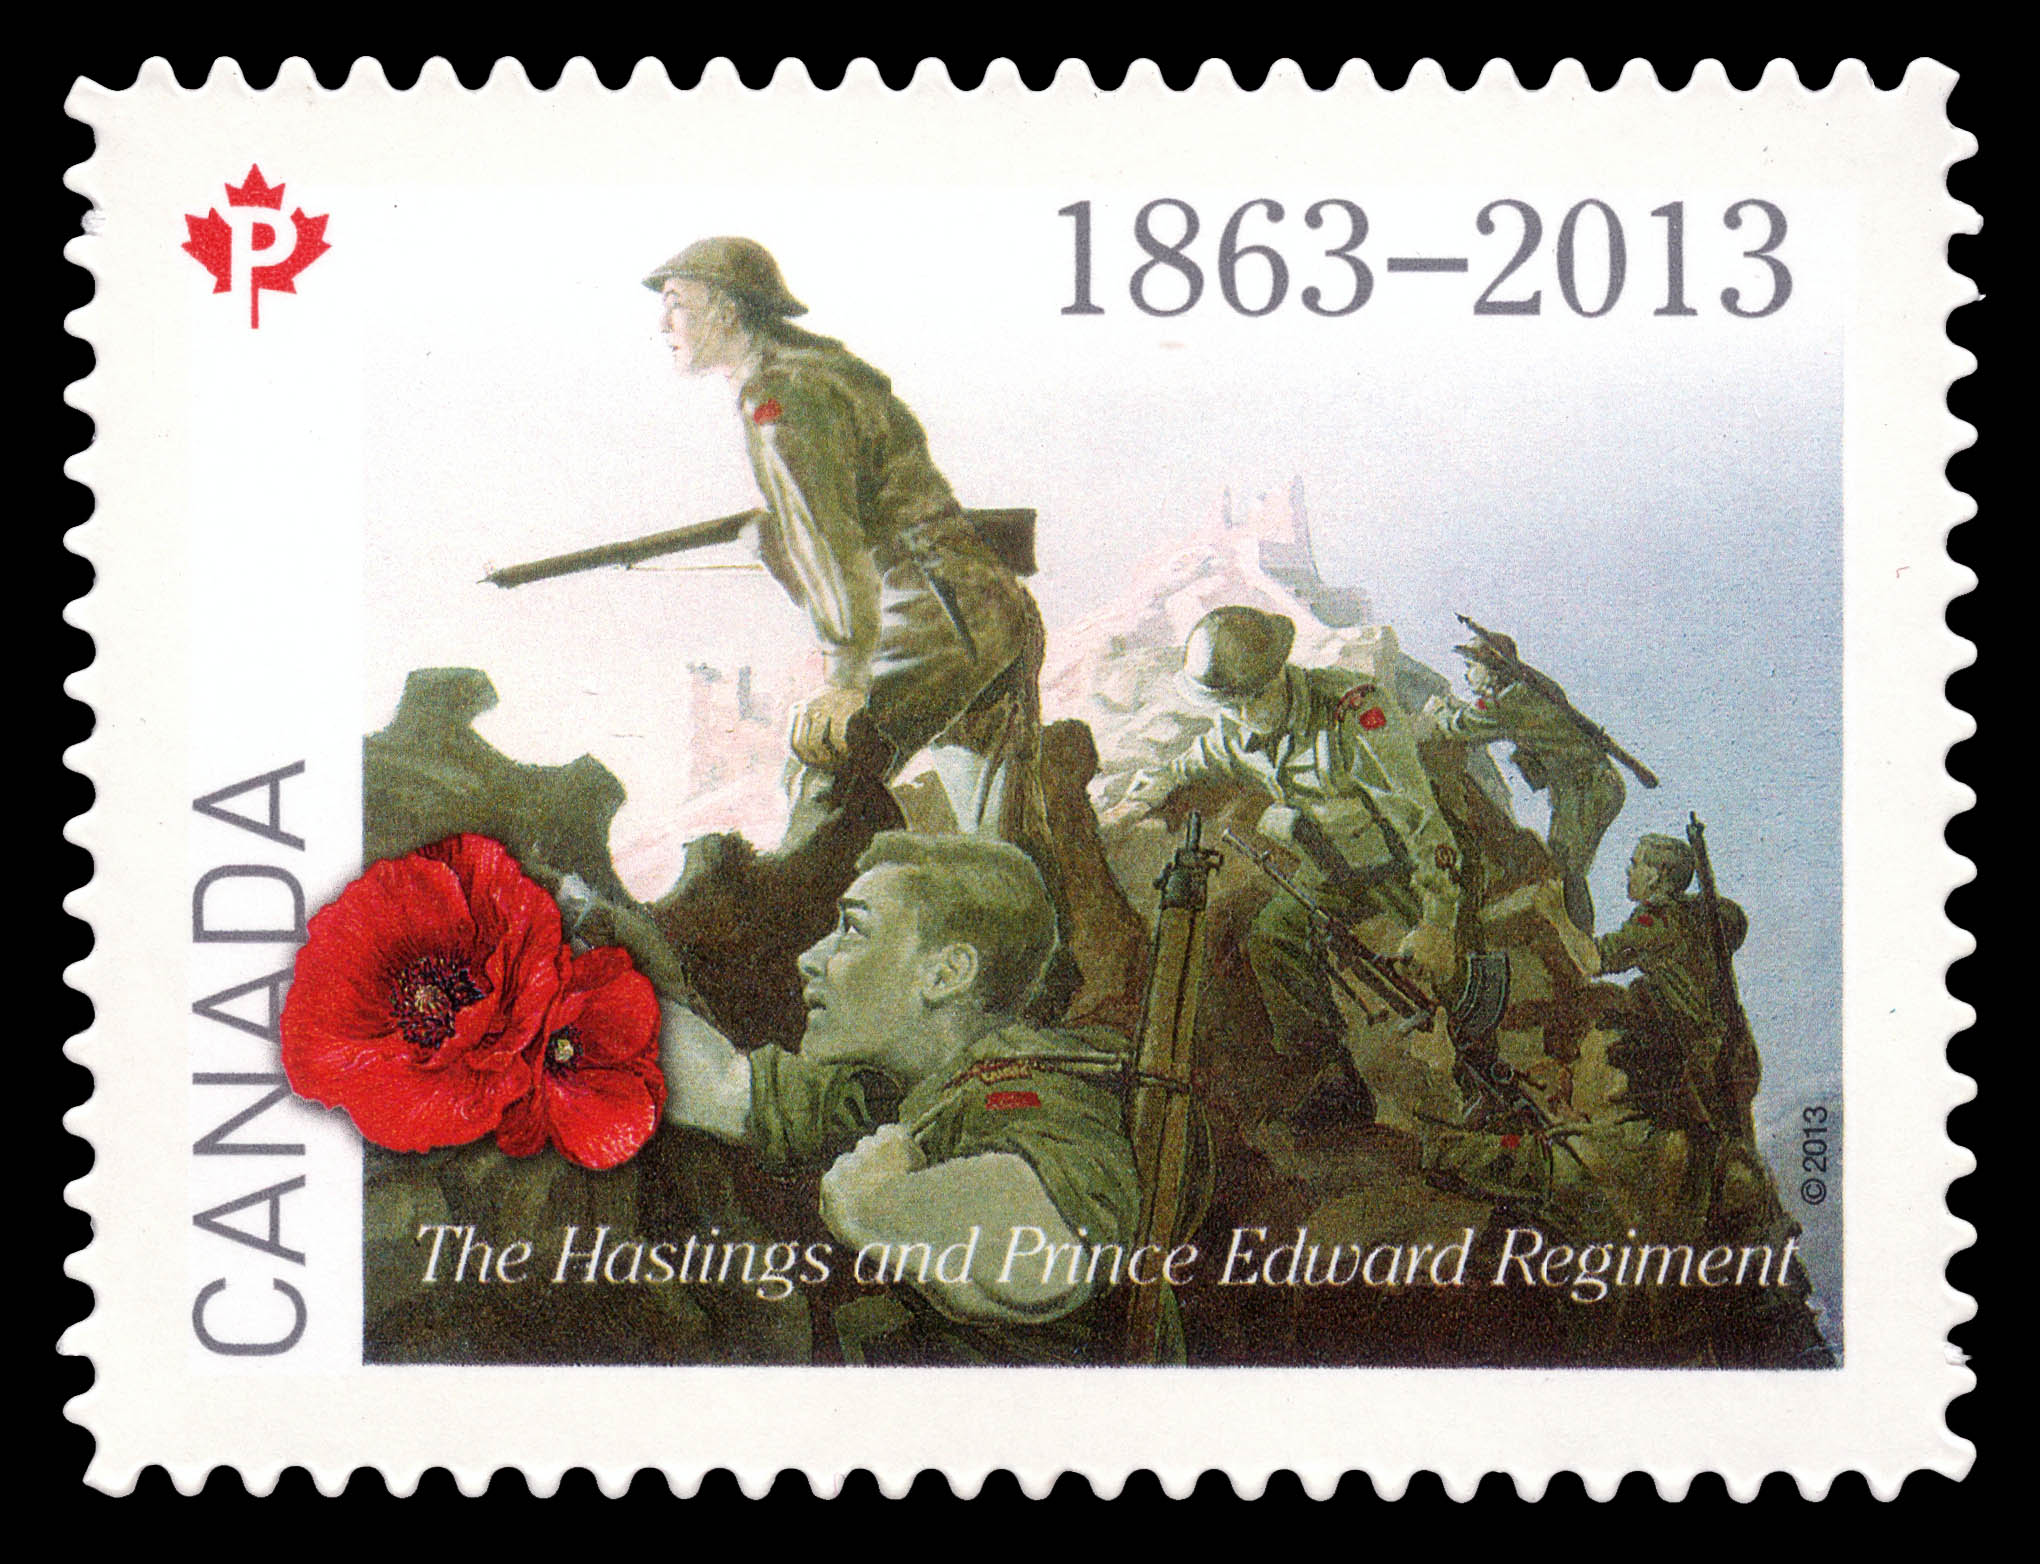 The Hastings and Prince Edward Regiment Canada Postage Stamp